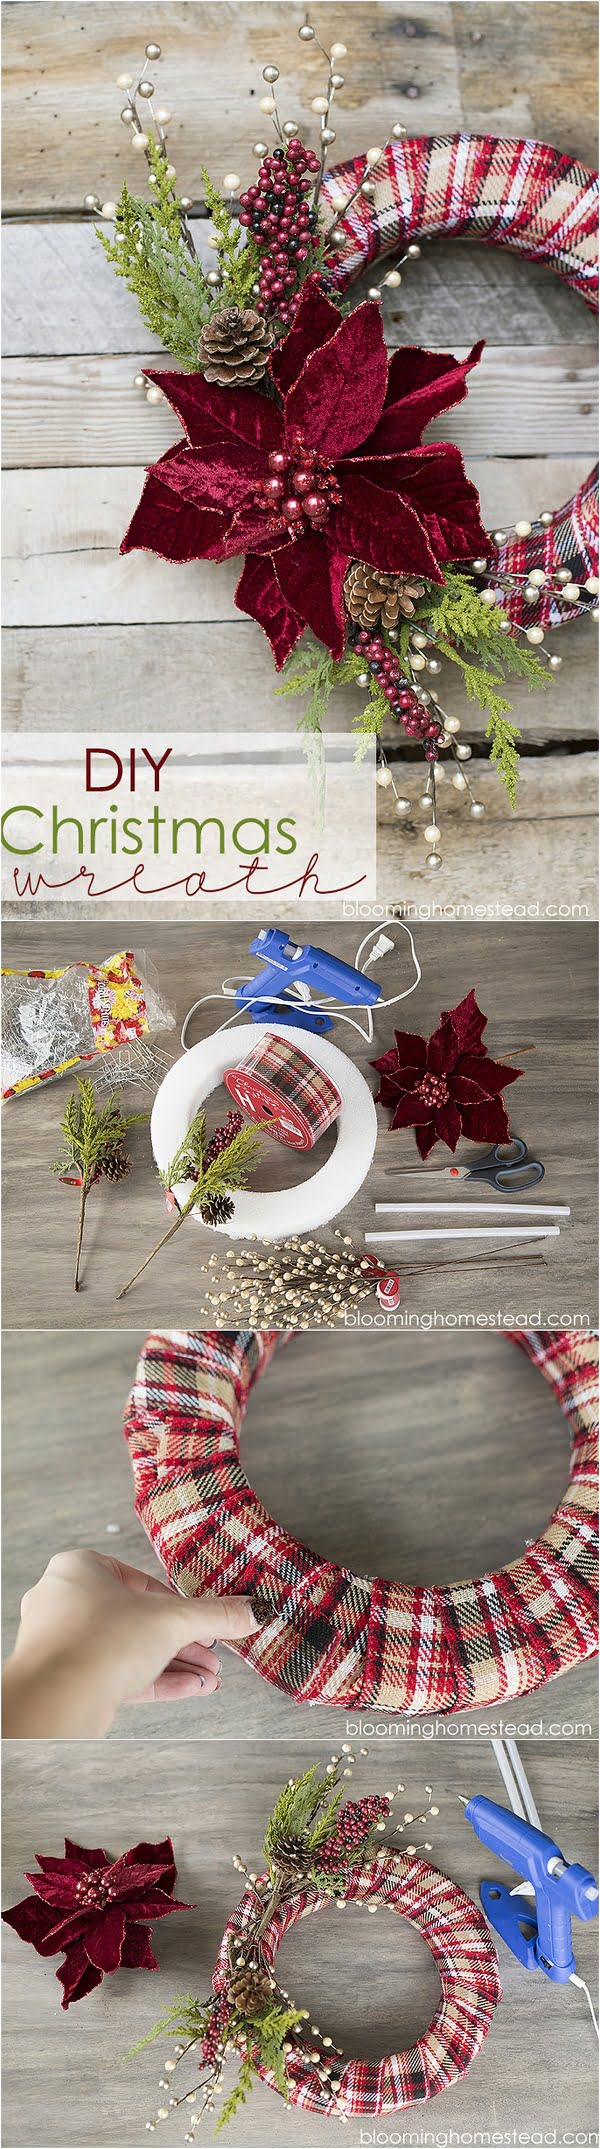 Check out this easy idea on how to make an elegant #DIY #Christmas wreath #homedecor #crafts #project